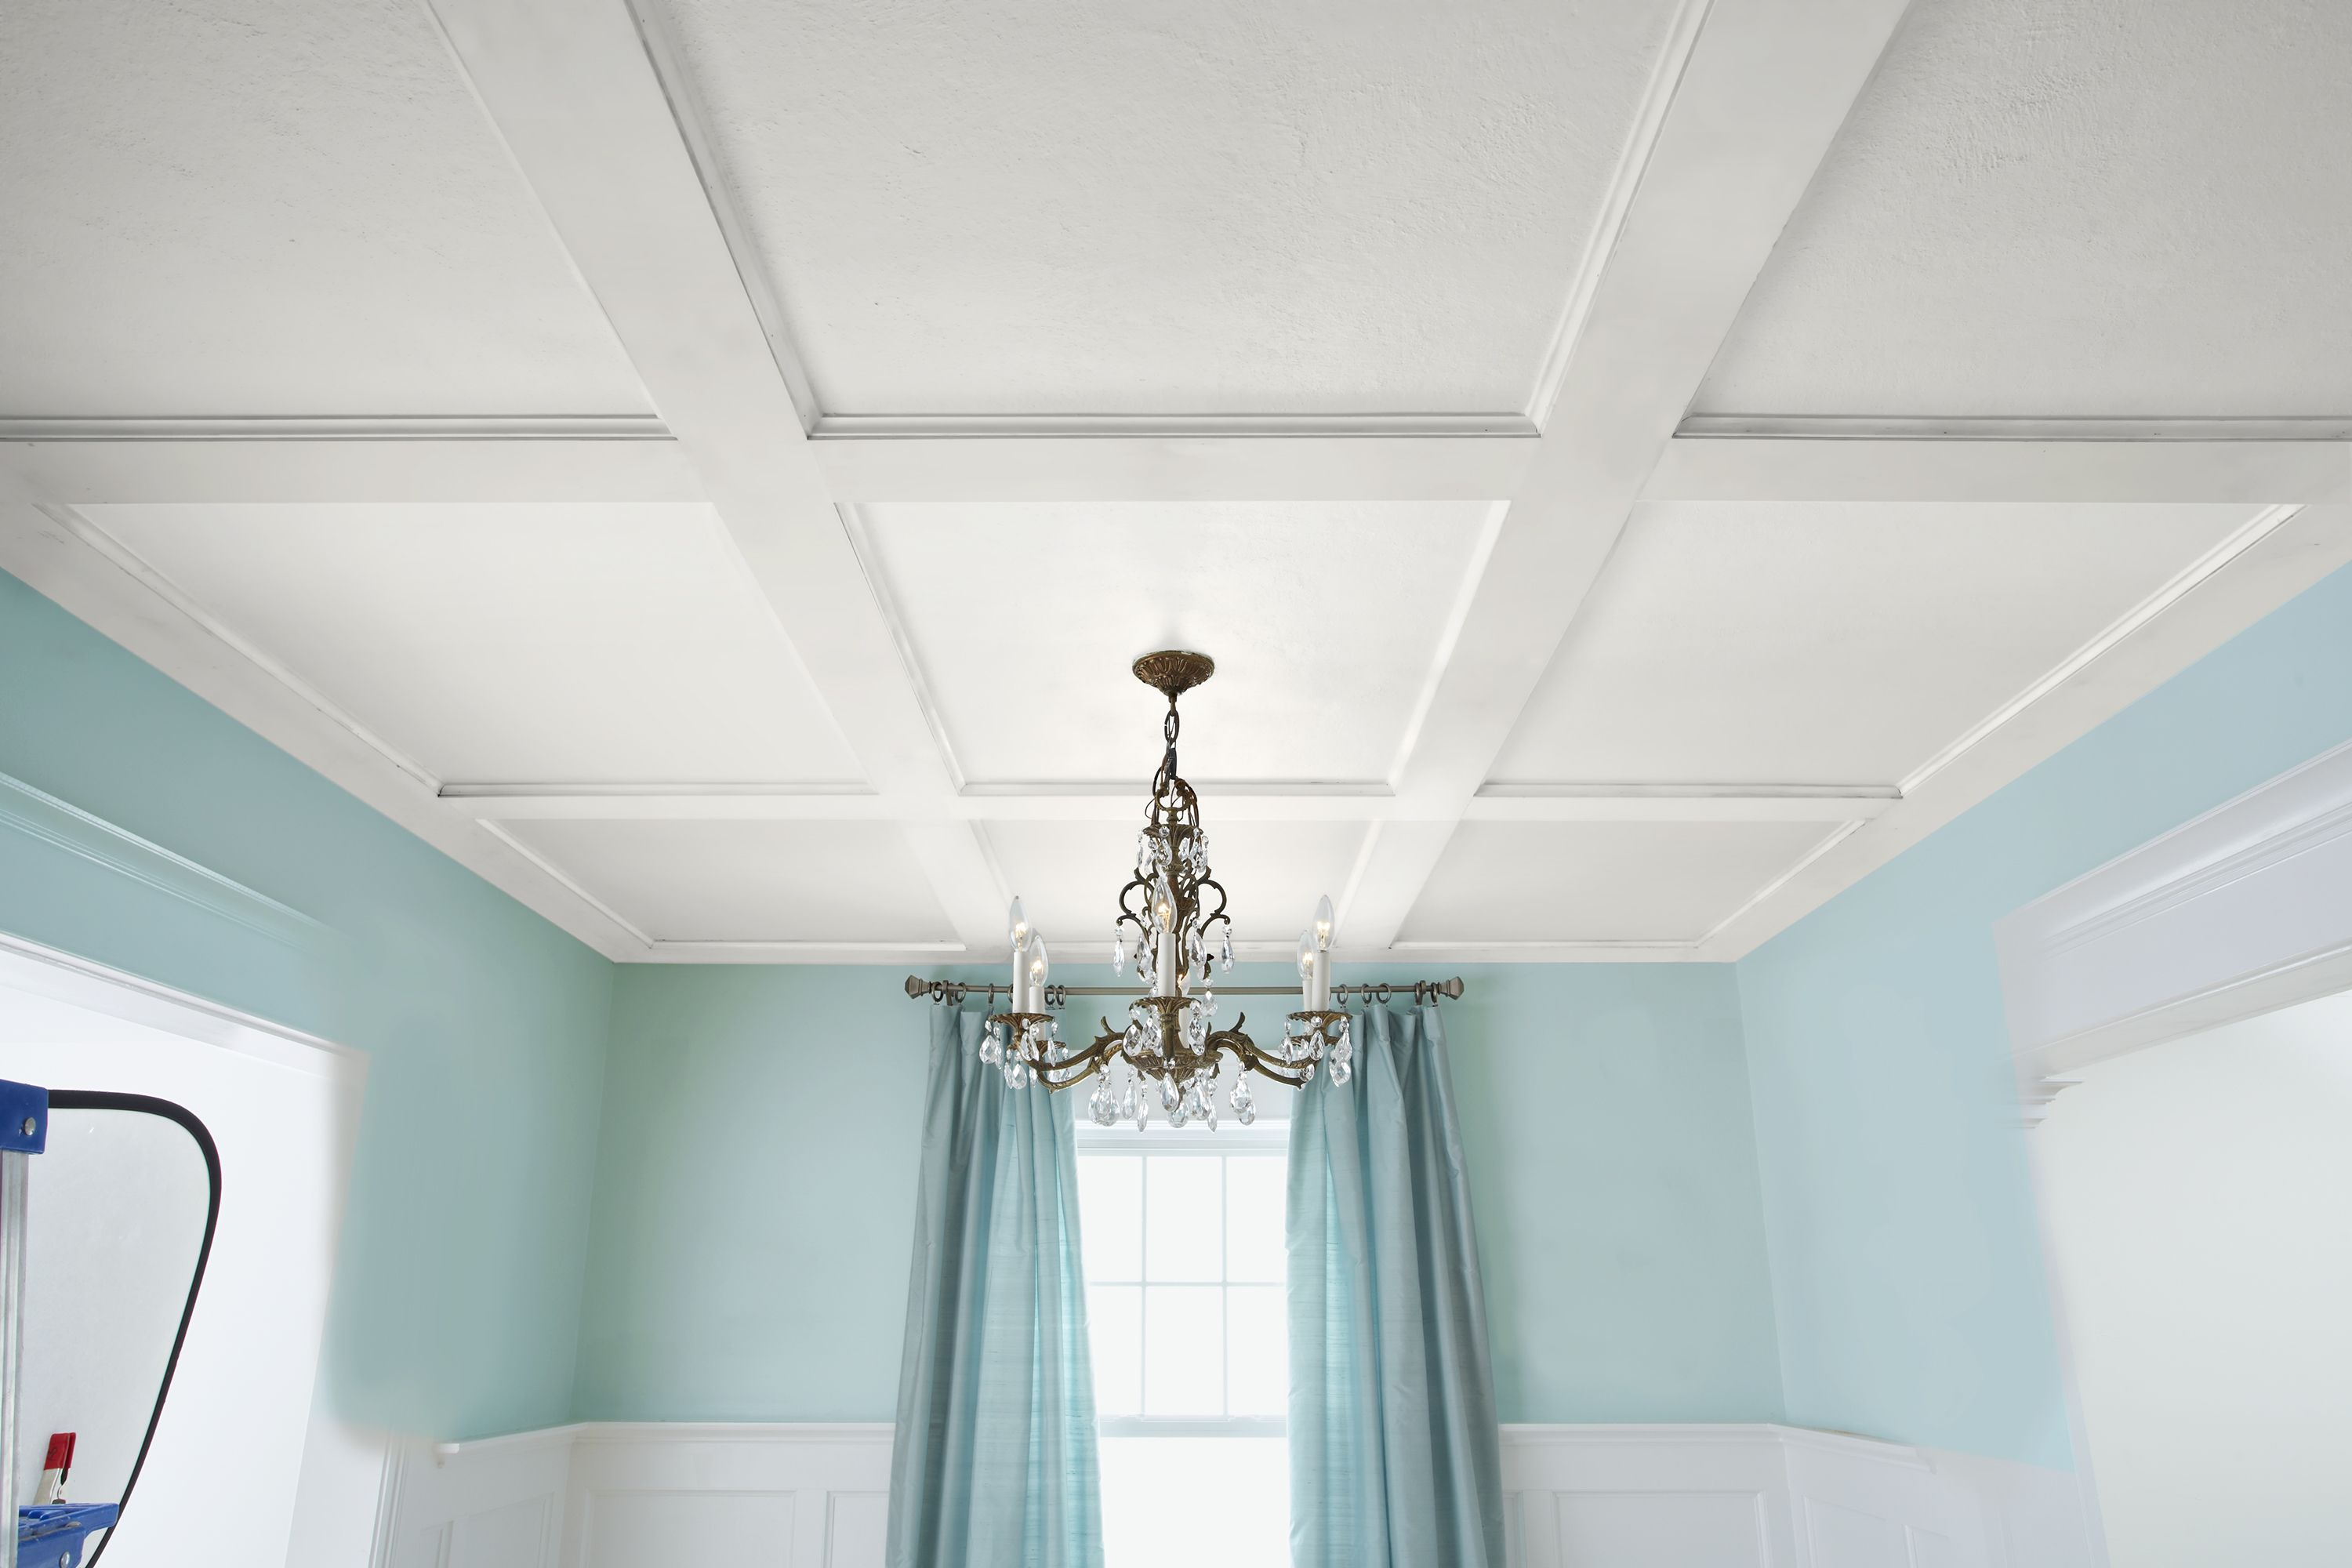 How to Build a Coffered Ceiling | Blue walls, Ceilings and Aqua blue